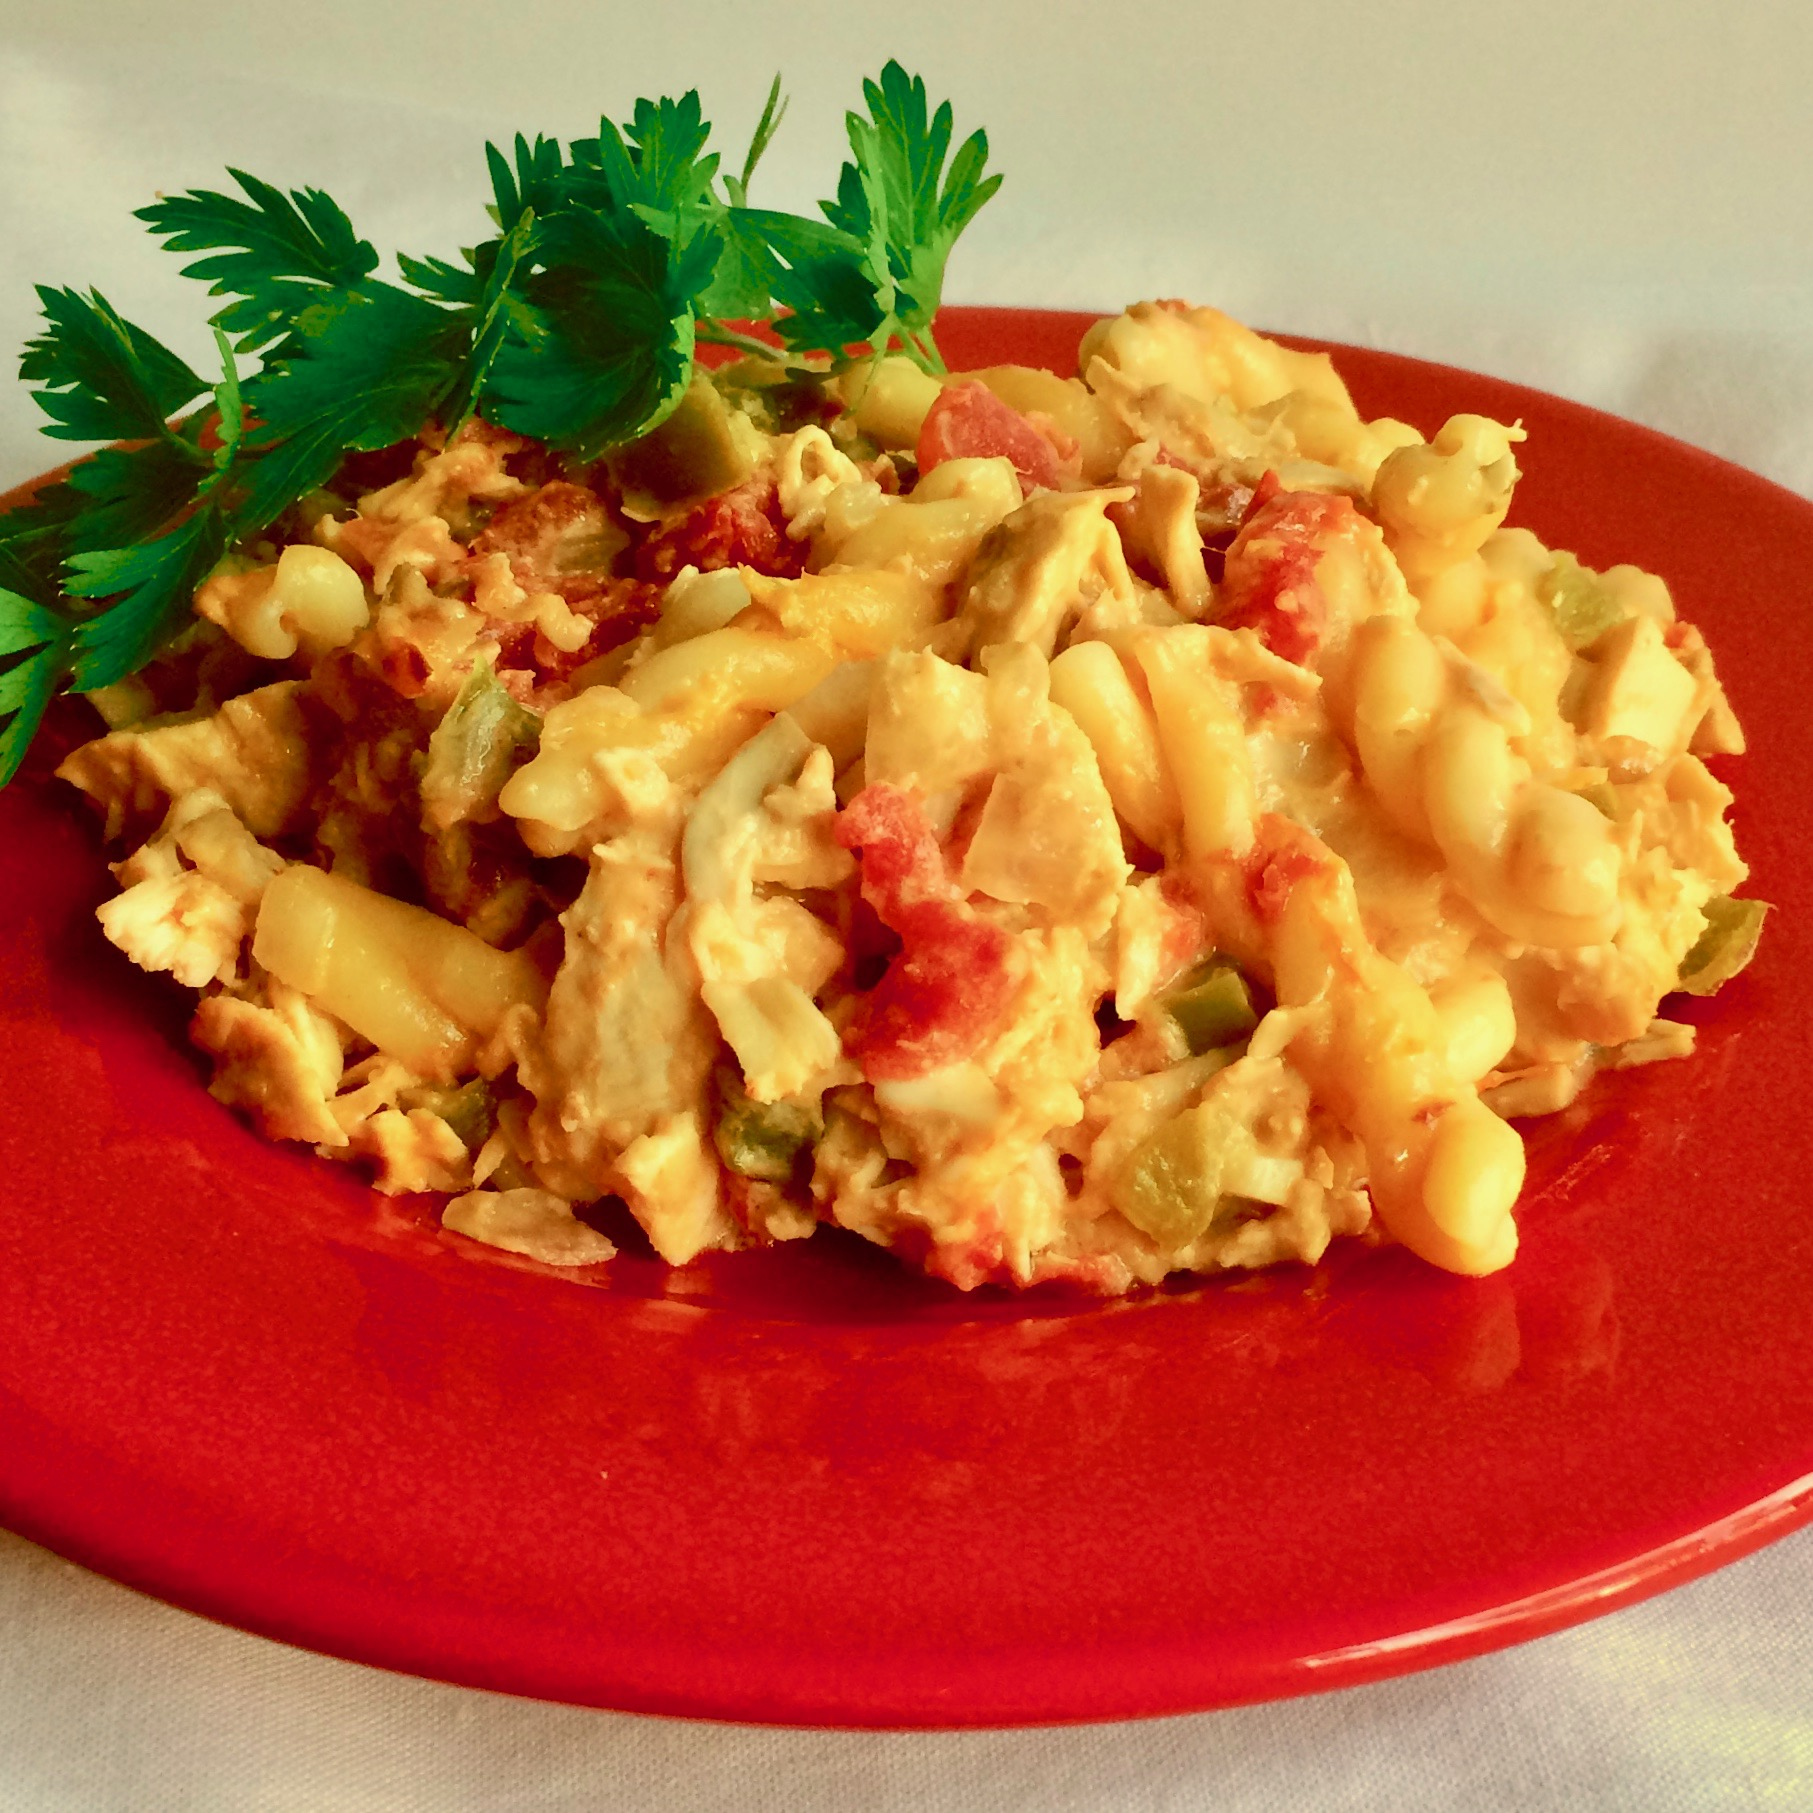 If 2020 wasn't the year of pantry cooking, there may never be another opportunity like it. While we were stuck at home and limiting our trips to the supermarket, many cooks got creative with what they had on hand. This recipe, aptly named Pantry Chicken Casserole, is a great option for using up many stock-up essentials, like canned tomatoes, Velveeta cheese, and pasta.